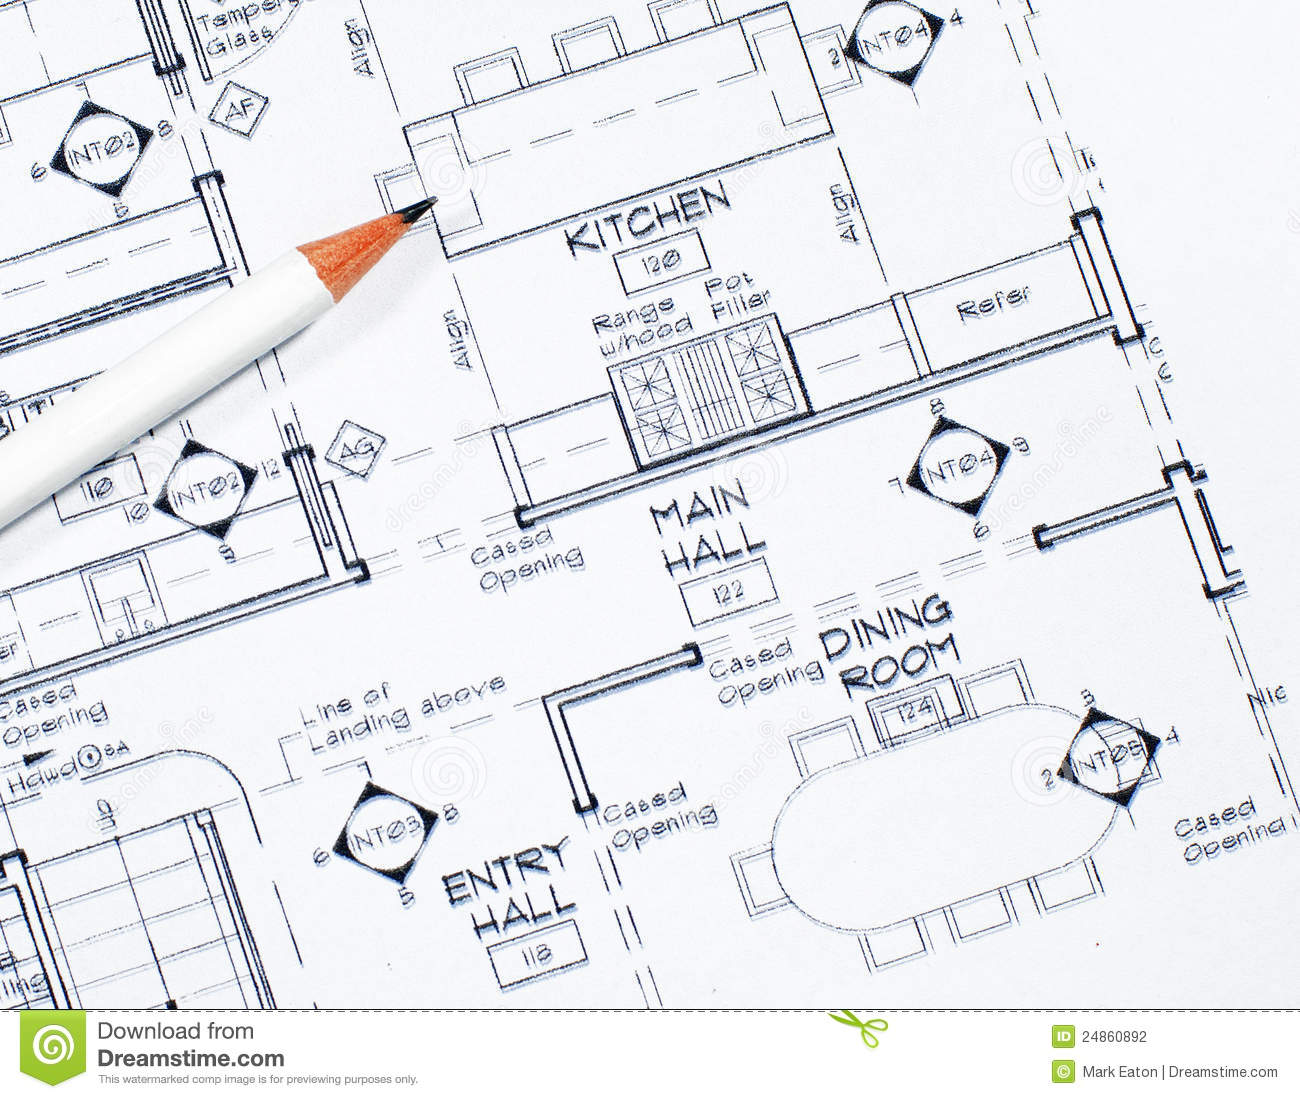 Interior design stock photo image of blueprint color for Image of interior design